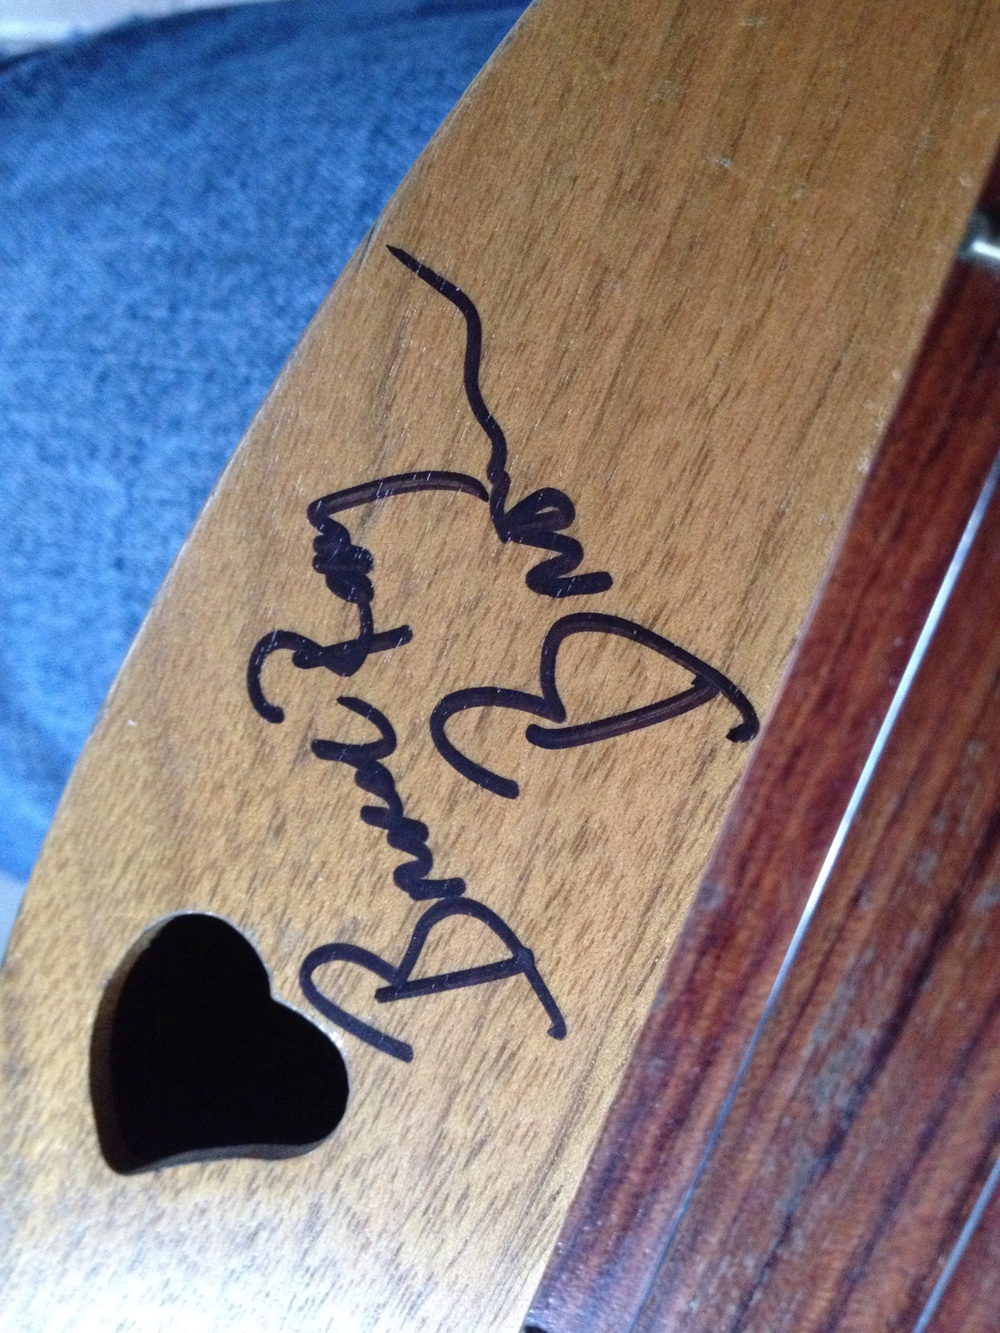 Charlie Daniels Band guitarist Bruce Ray Brown, a 25-year veteran of the band, signed my dulcimer and inquired about lessons!